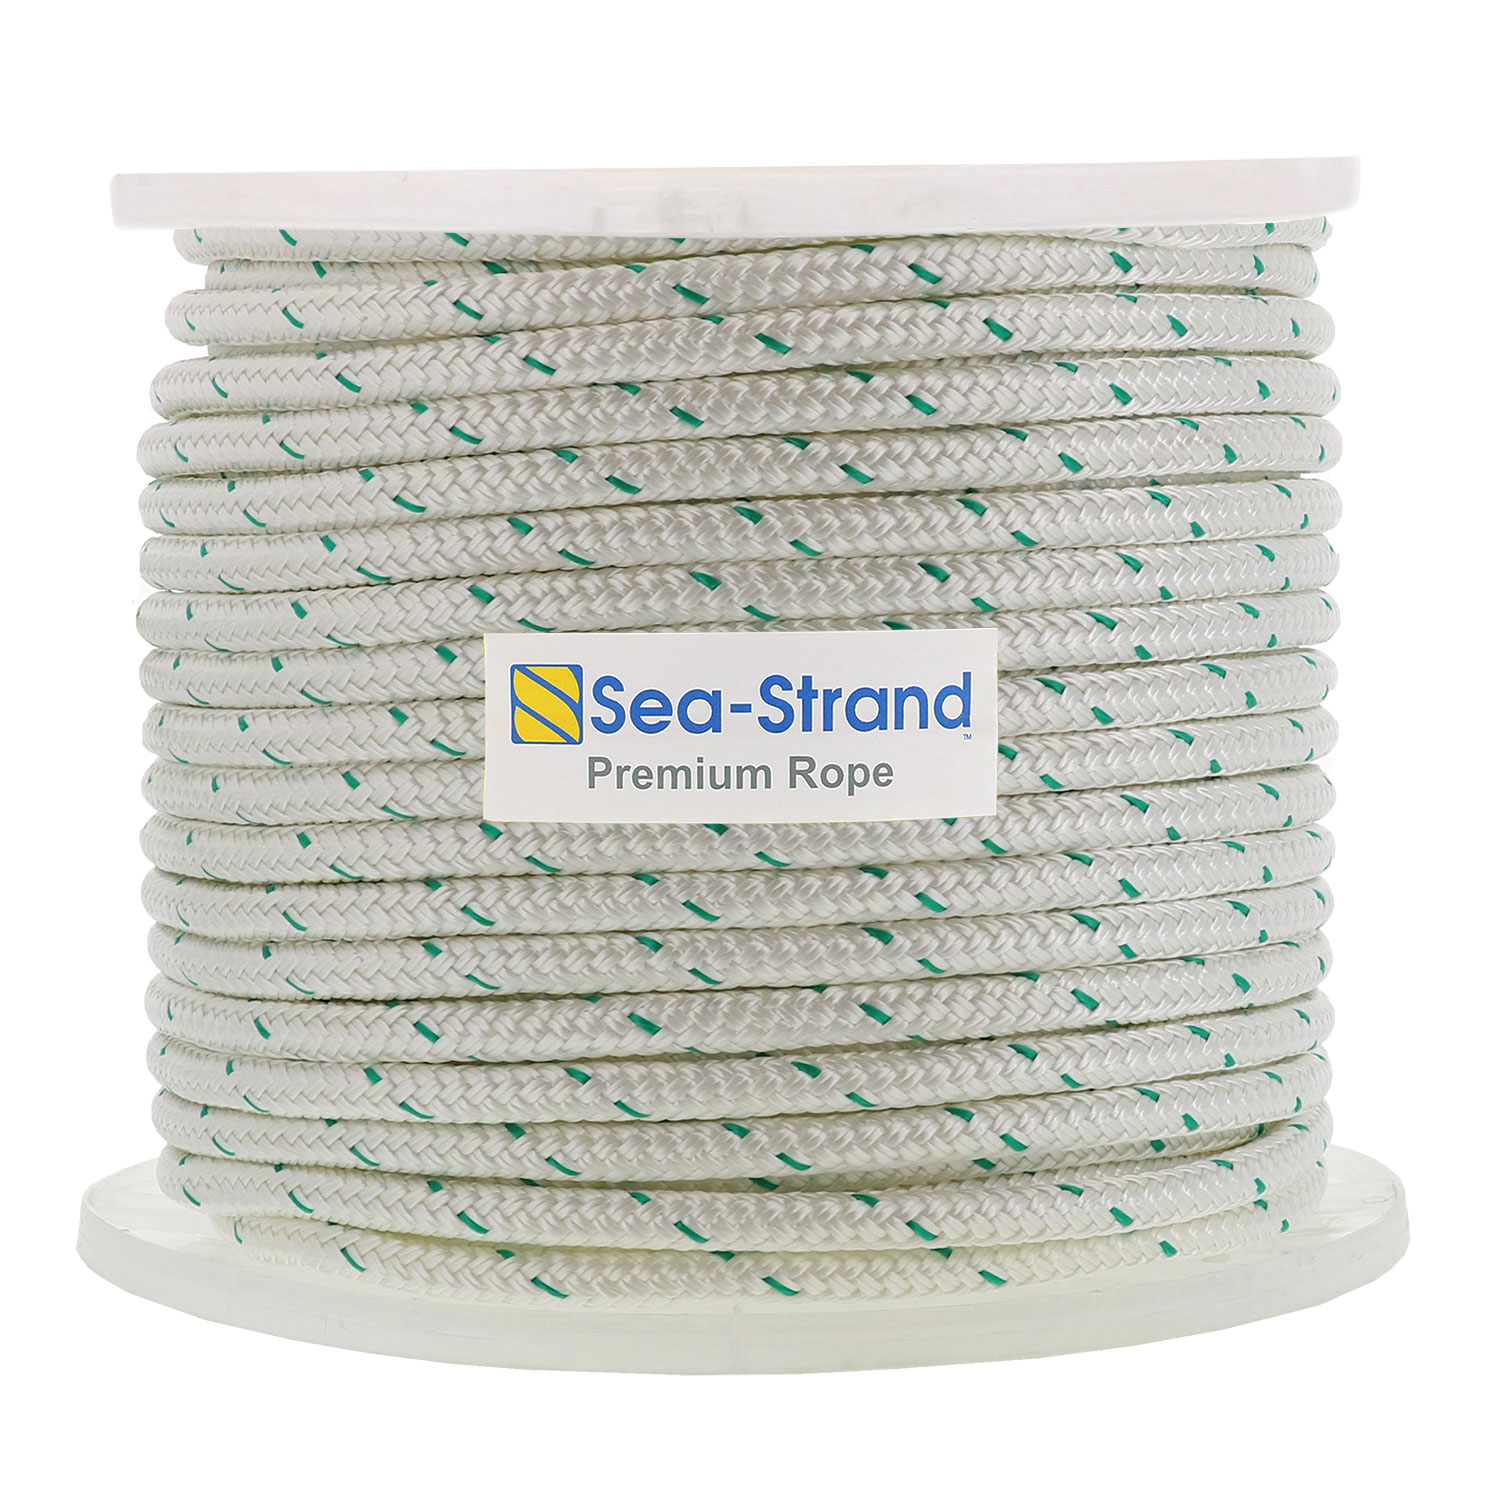 "1/2"" x 600' Reel, Double Braid Polyester Rope Image 1"